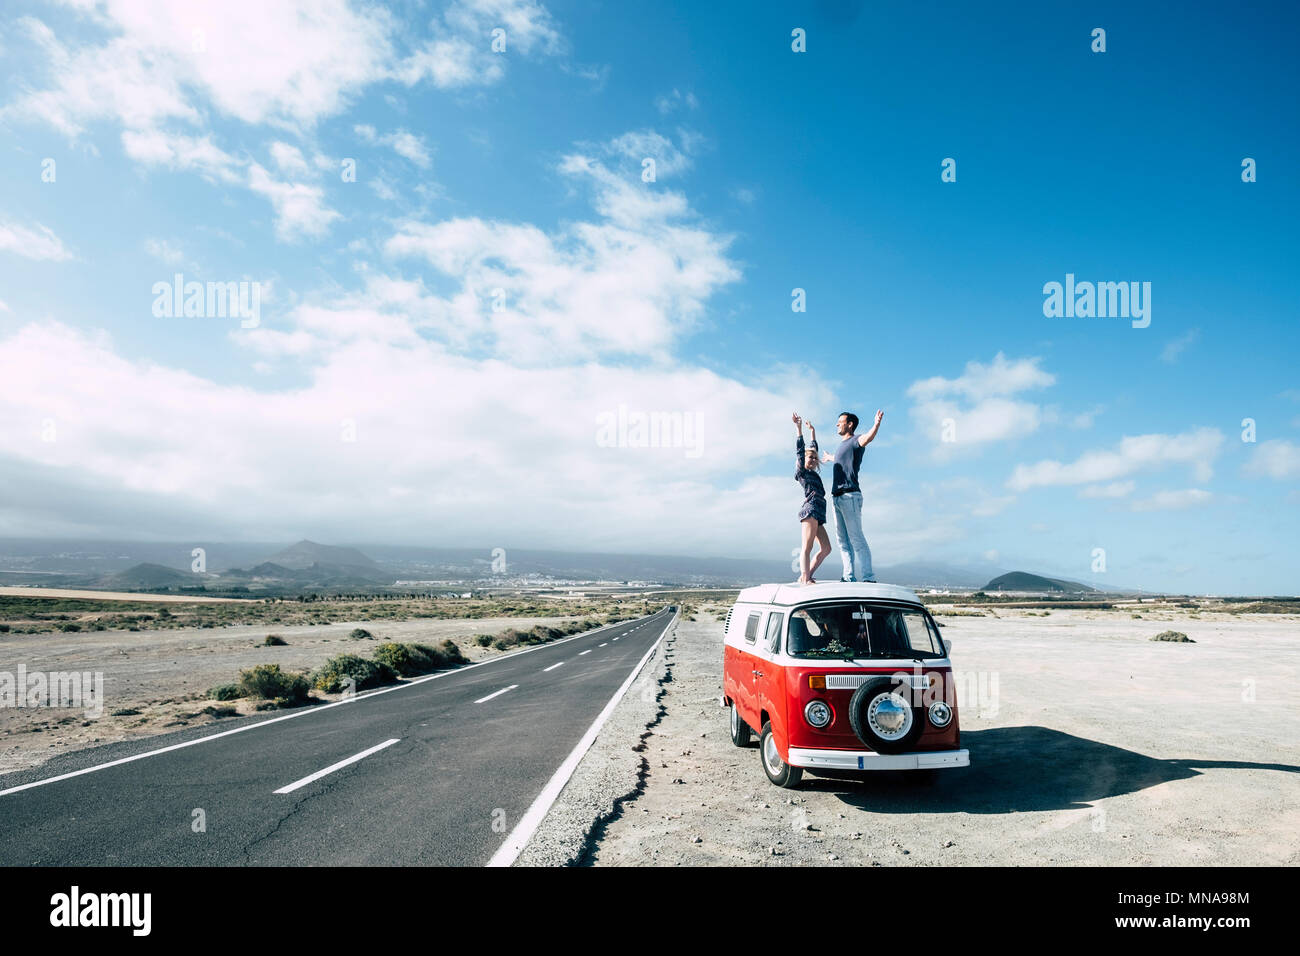 hippy style for an alternative vacation time outdoor leisure activity for young couple caucasian beautiful staying on the rooftop of a vintage van nea - Stock Image